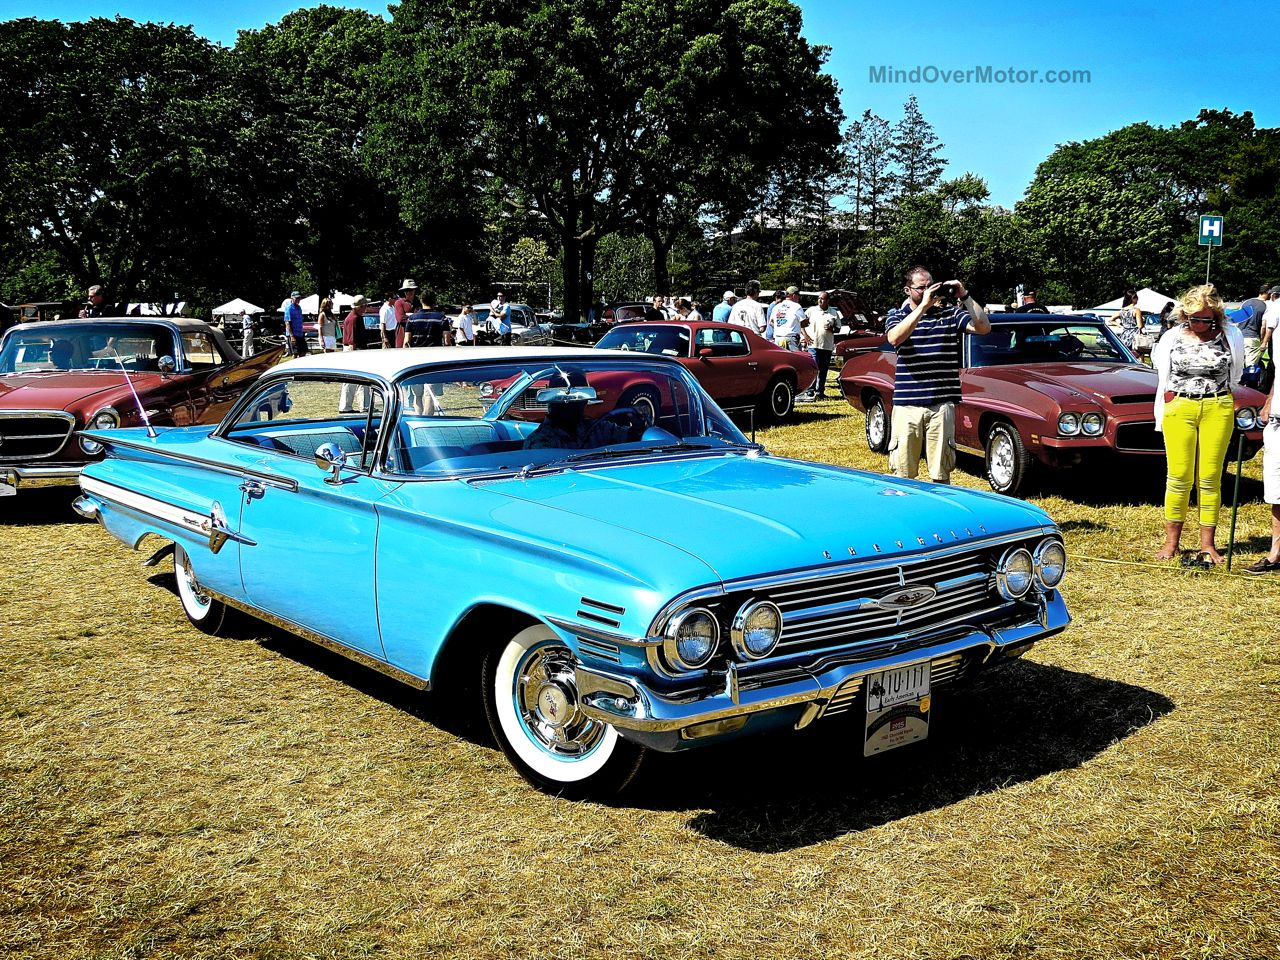 Greenwich Chevrolet Impala Blue